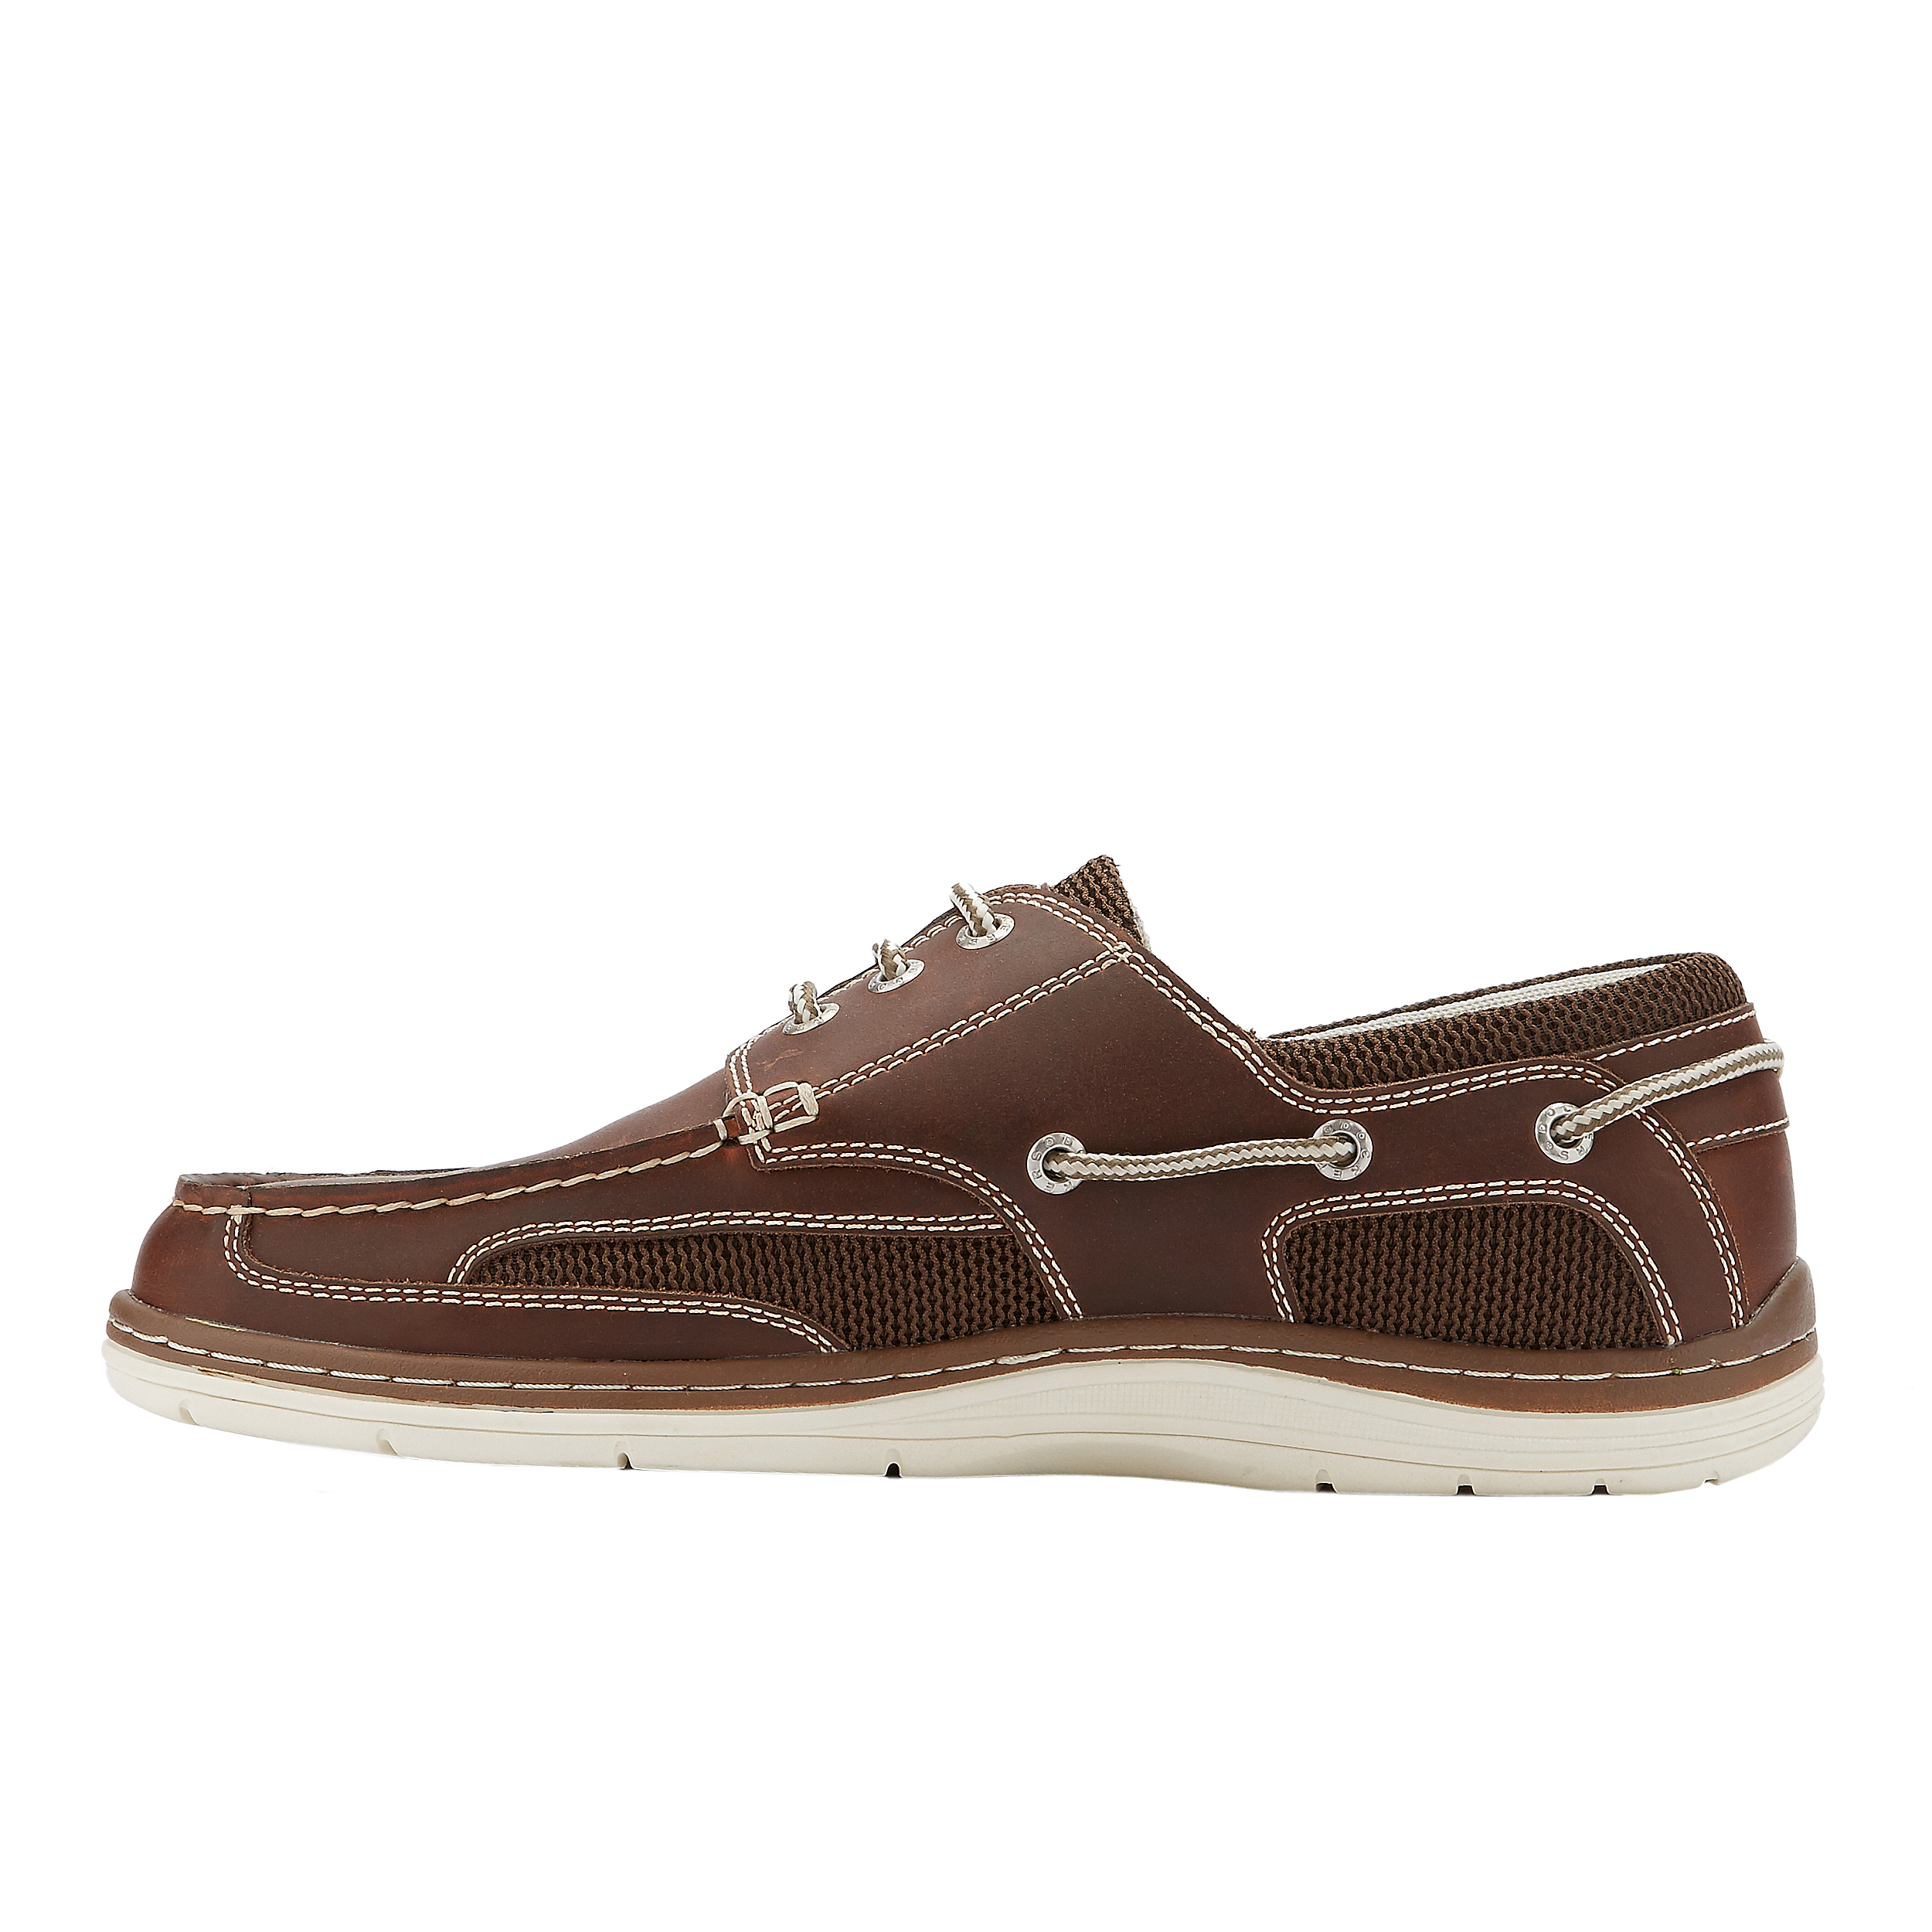 Dockers-Mens-Lakeport-Genuine-Leather-Casual-Rubber-Sole-Sport-Boat-Shoe thumbnail 23